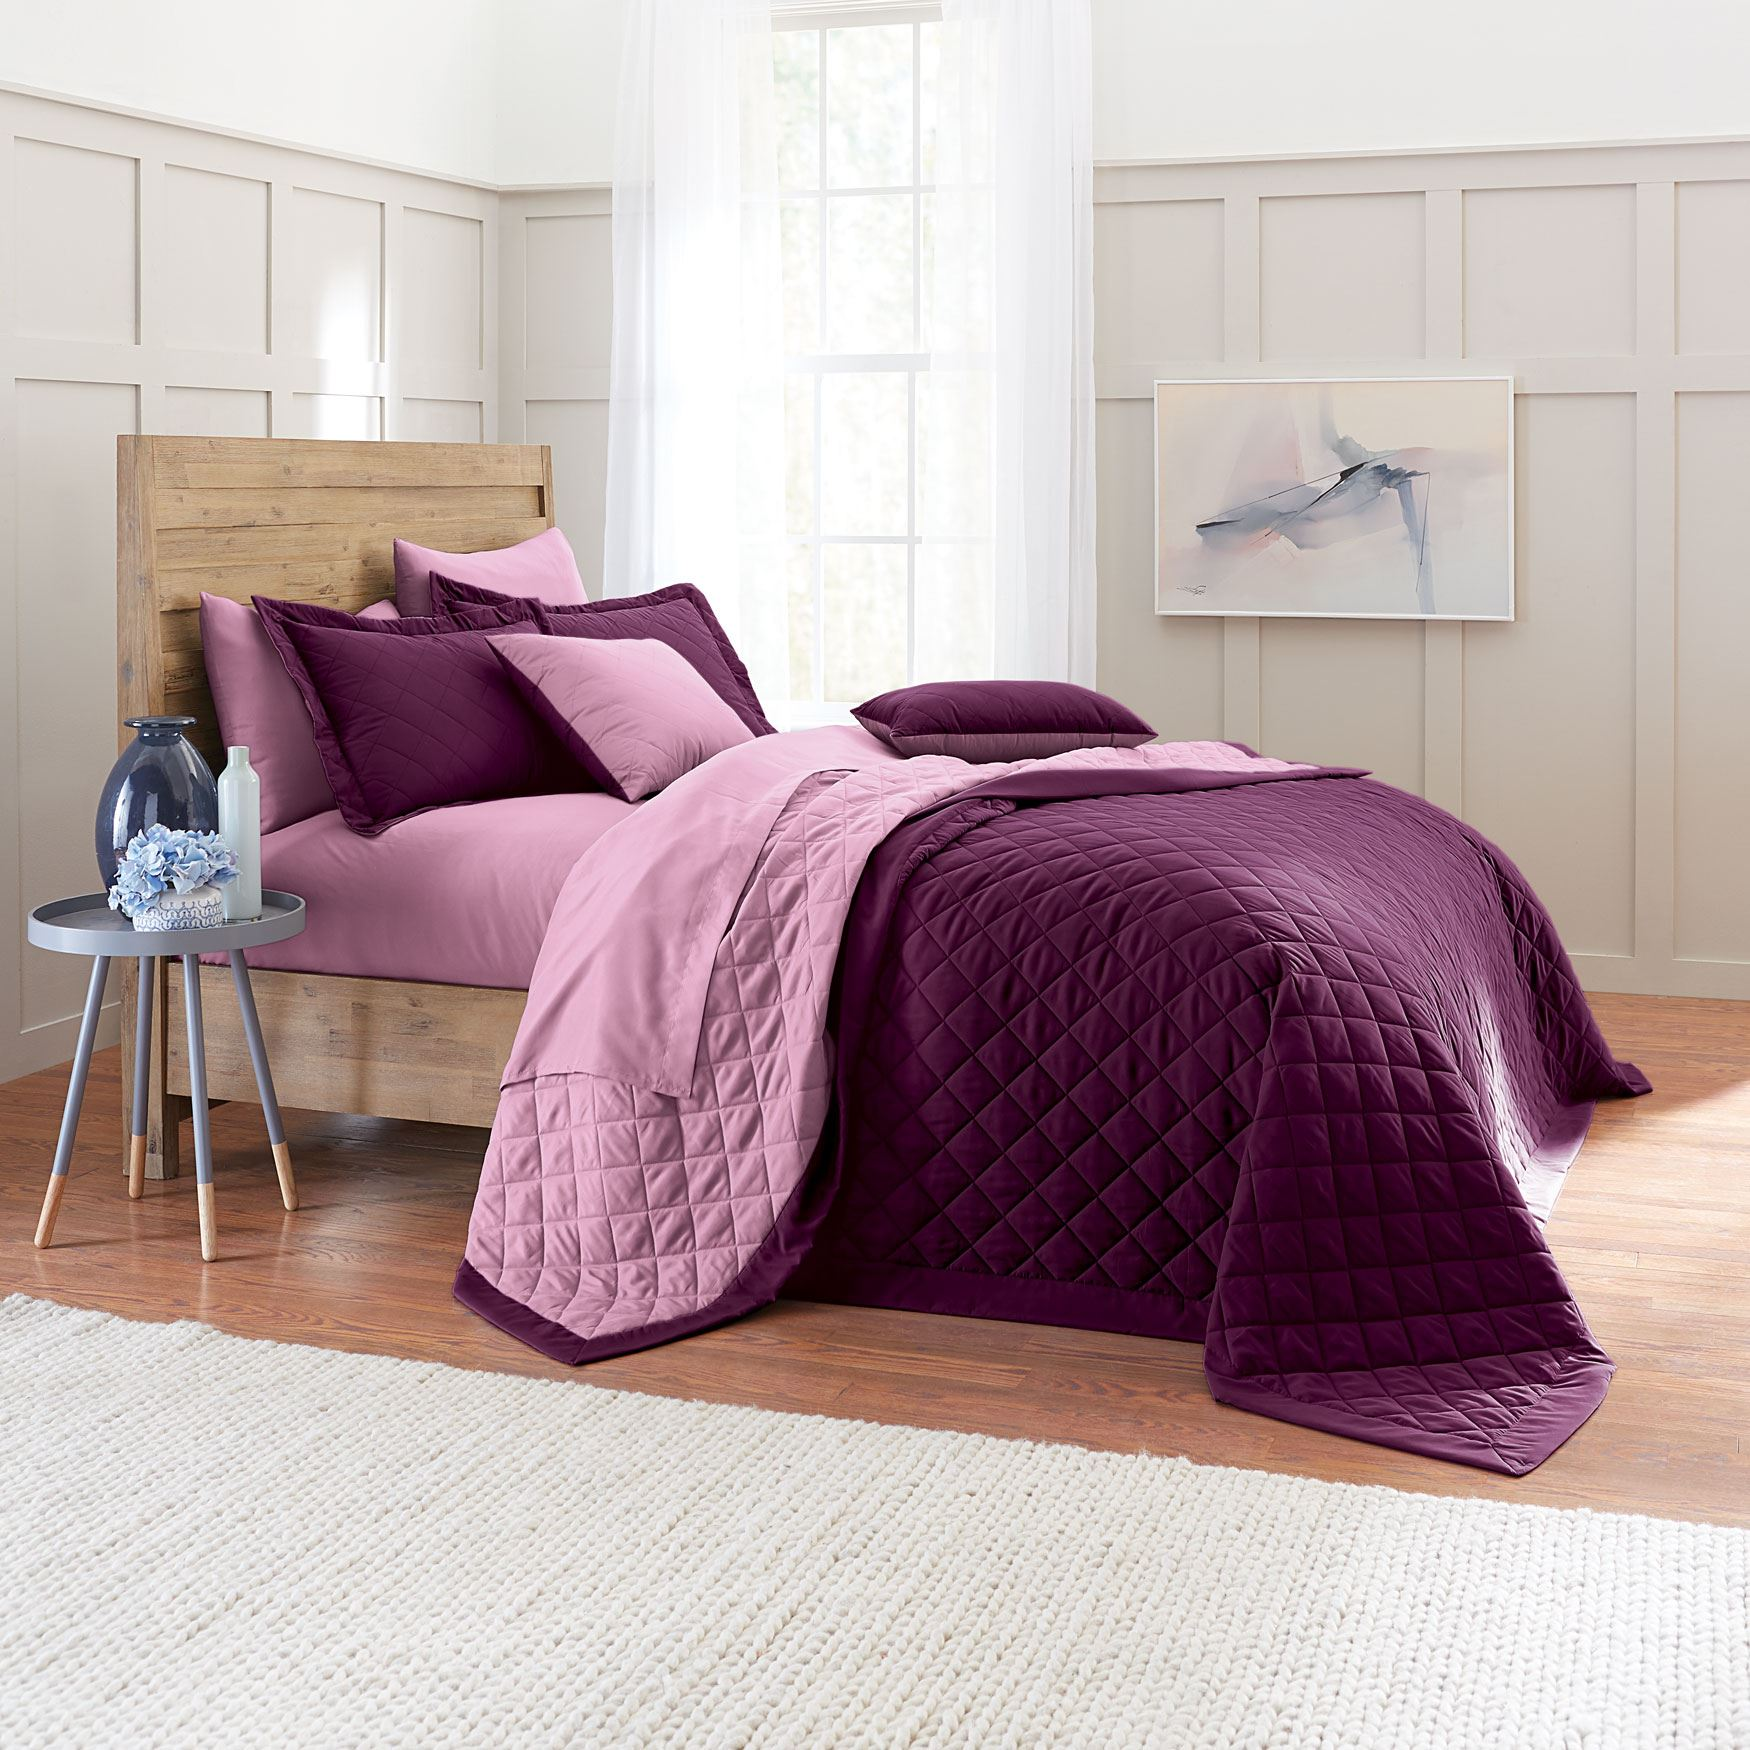 BH Studio® Reversible Quilted Bedspread,